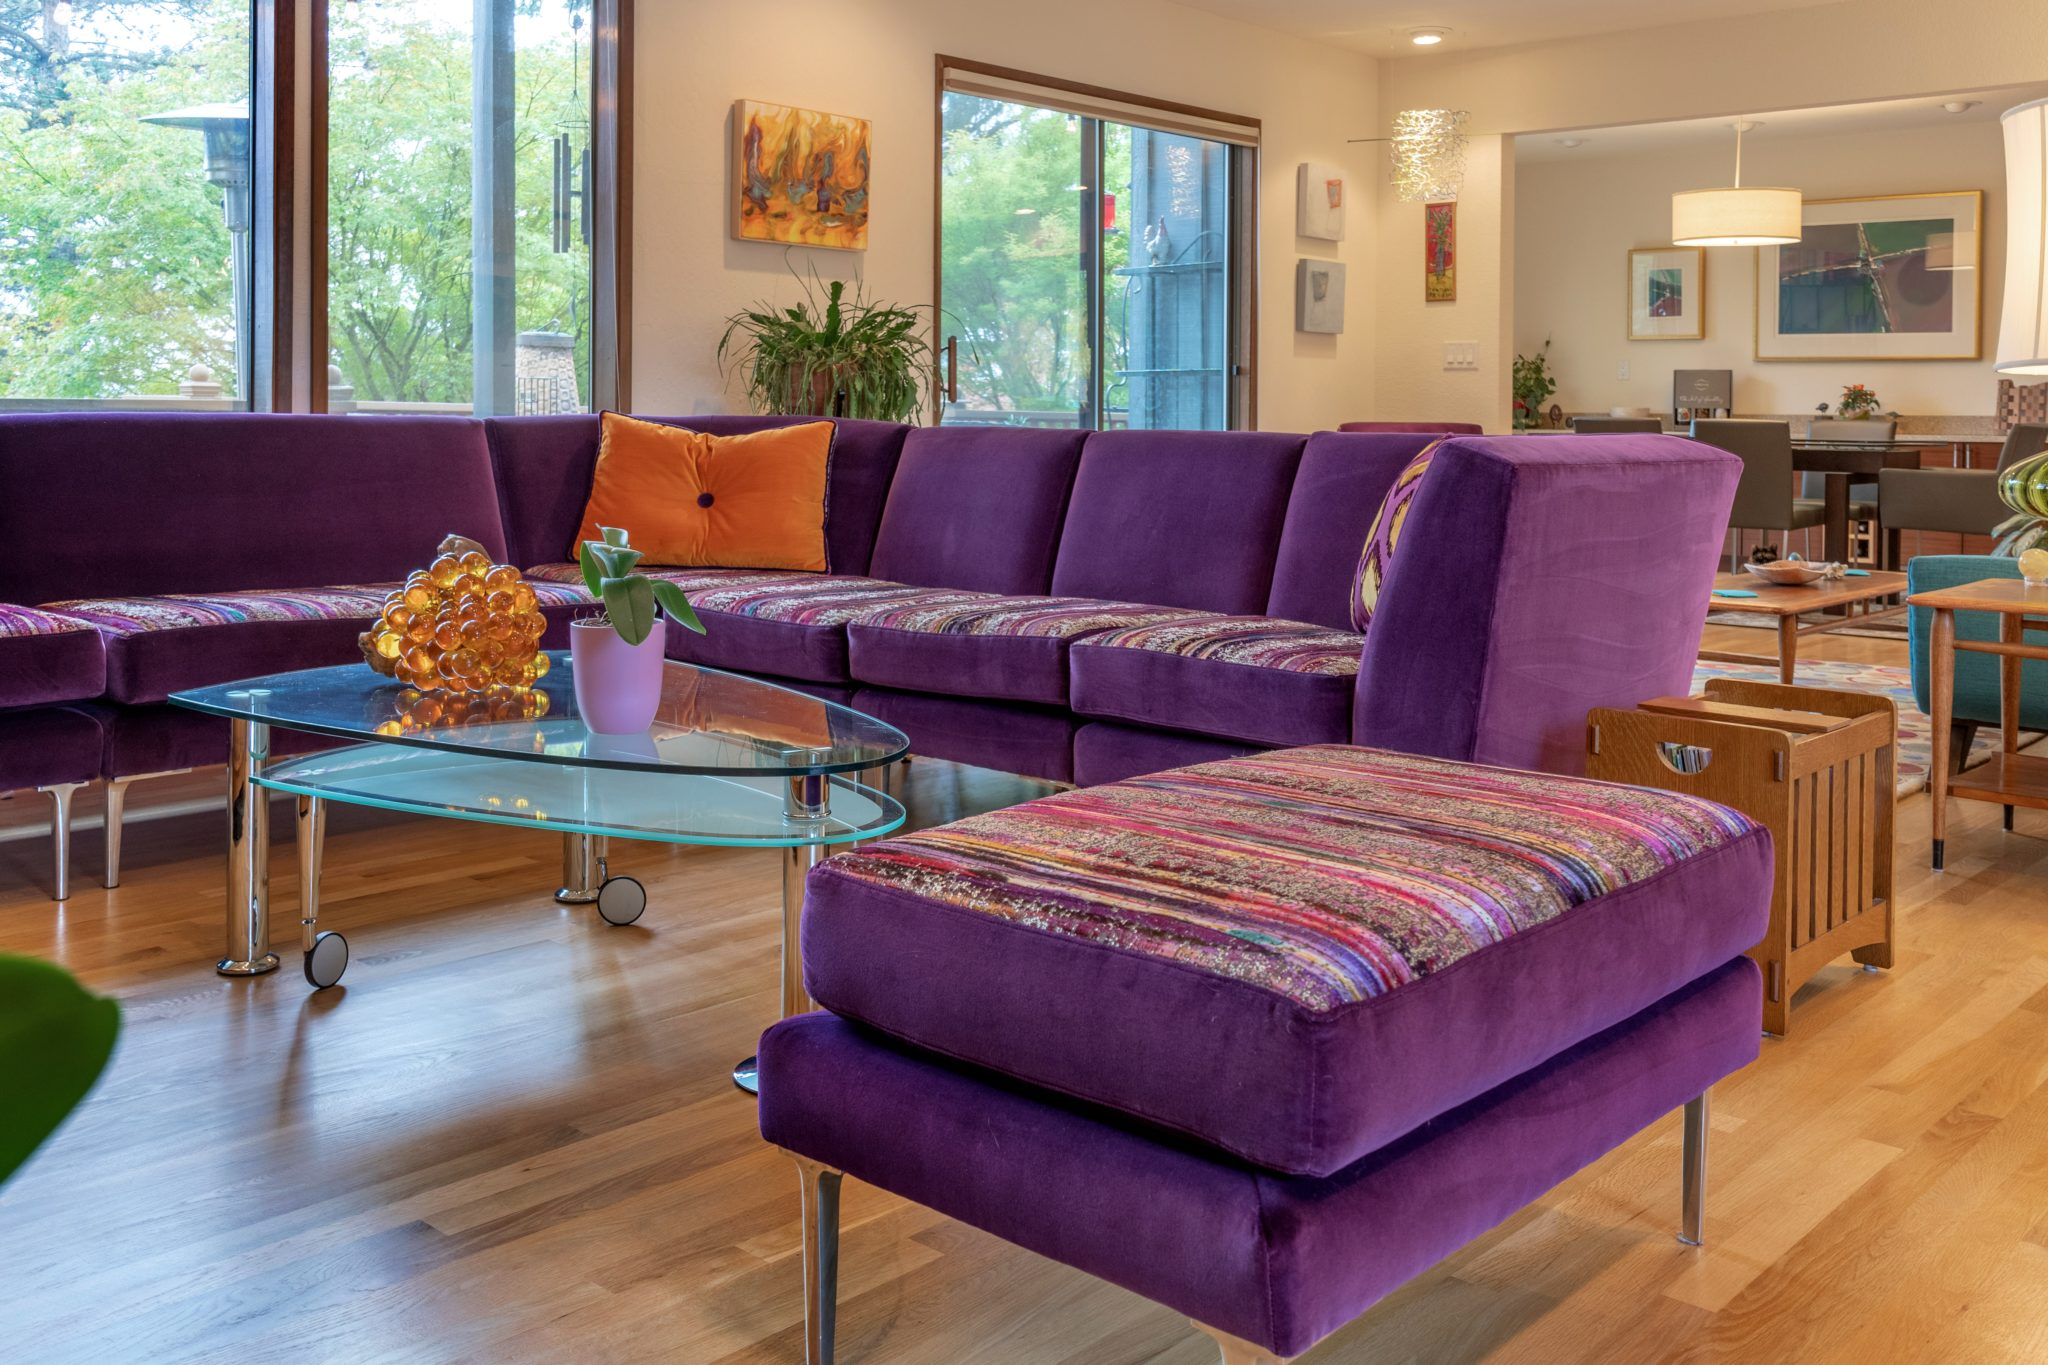 SW Portland, OR: Modern Living room with a vivid purple velvet sectional sofa. by John Thompson Designer